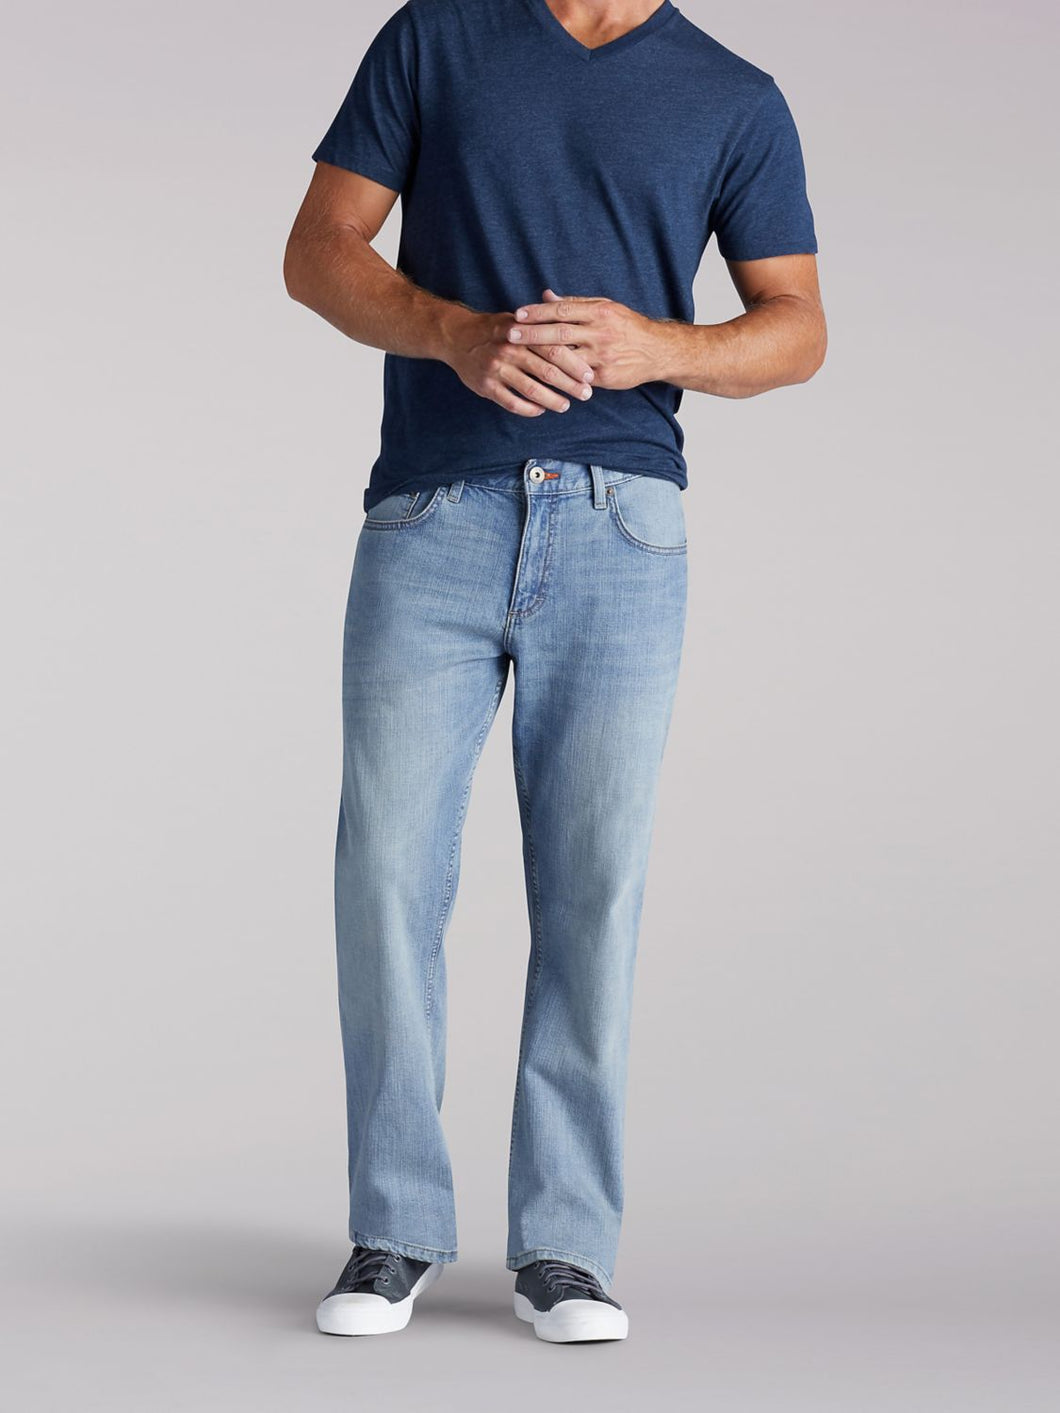 Modern Series Relaxed Bootcut Jean in Leo from Front View